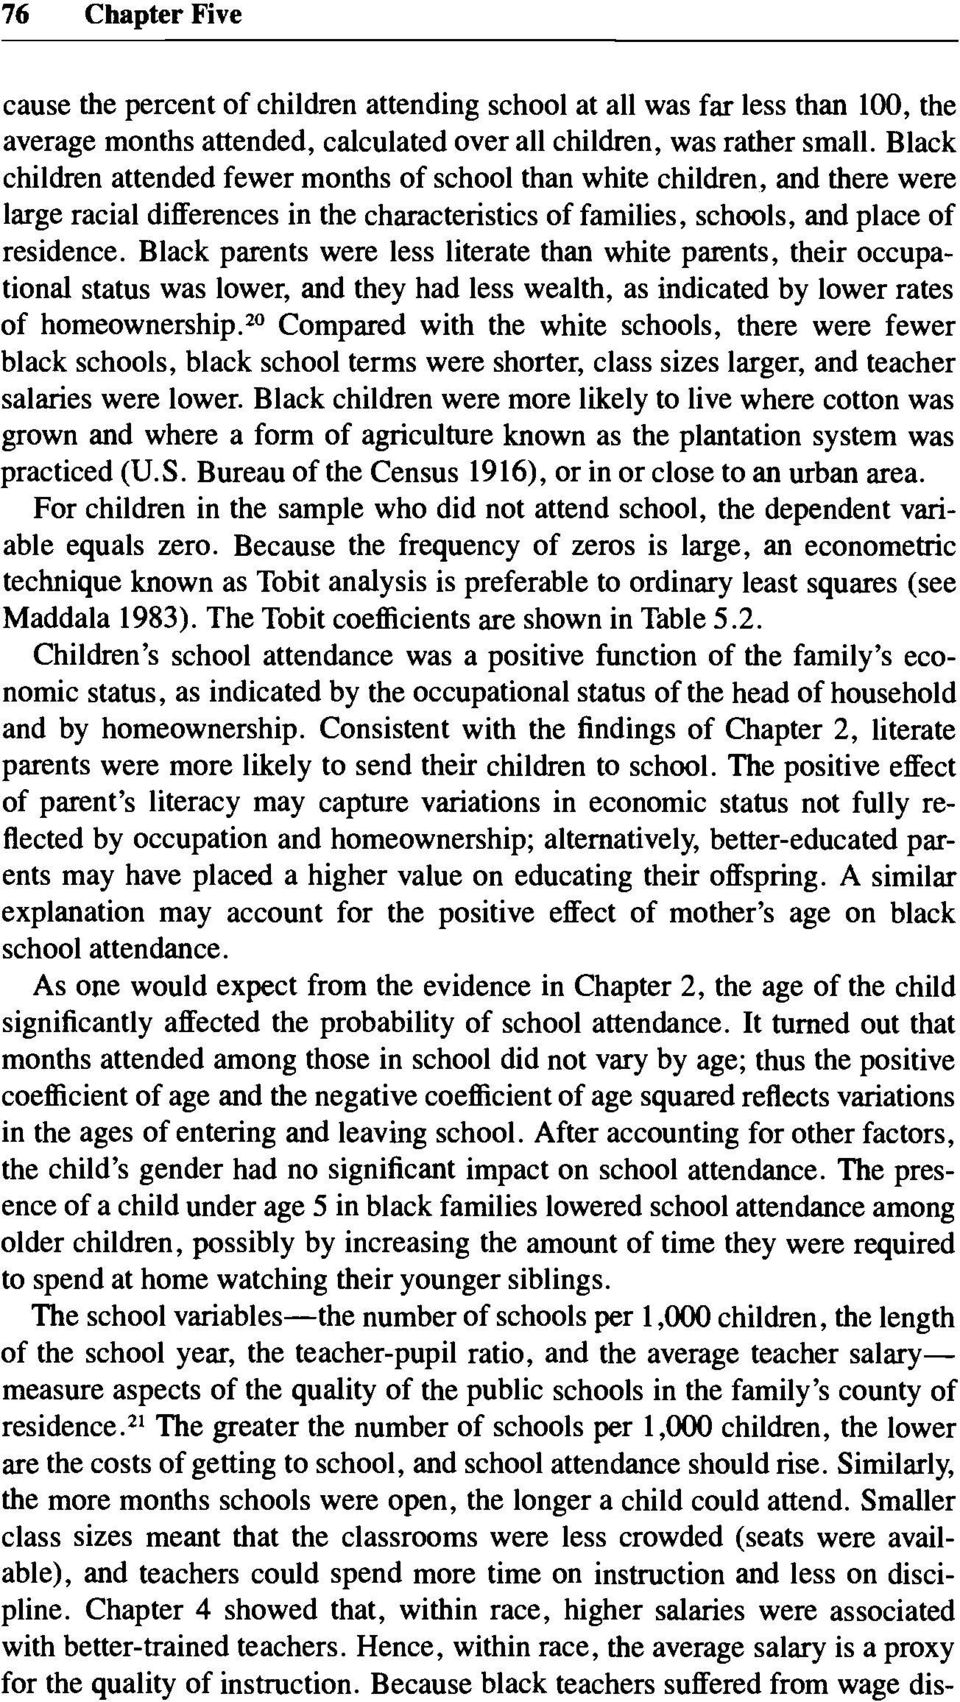 parents were less literate than white parents, their occupational status was lower, and they had less wealth, as indicated by lower rates of homeownership.